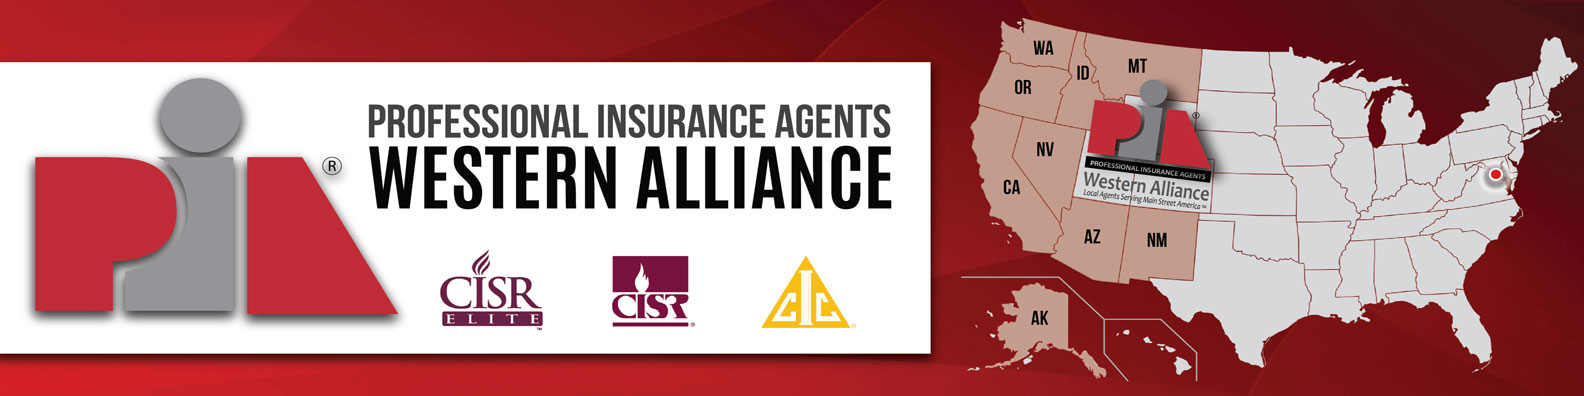 Weekly Industry News - Professional Insurance Agents Western